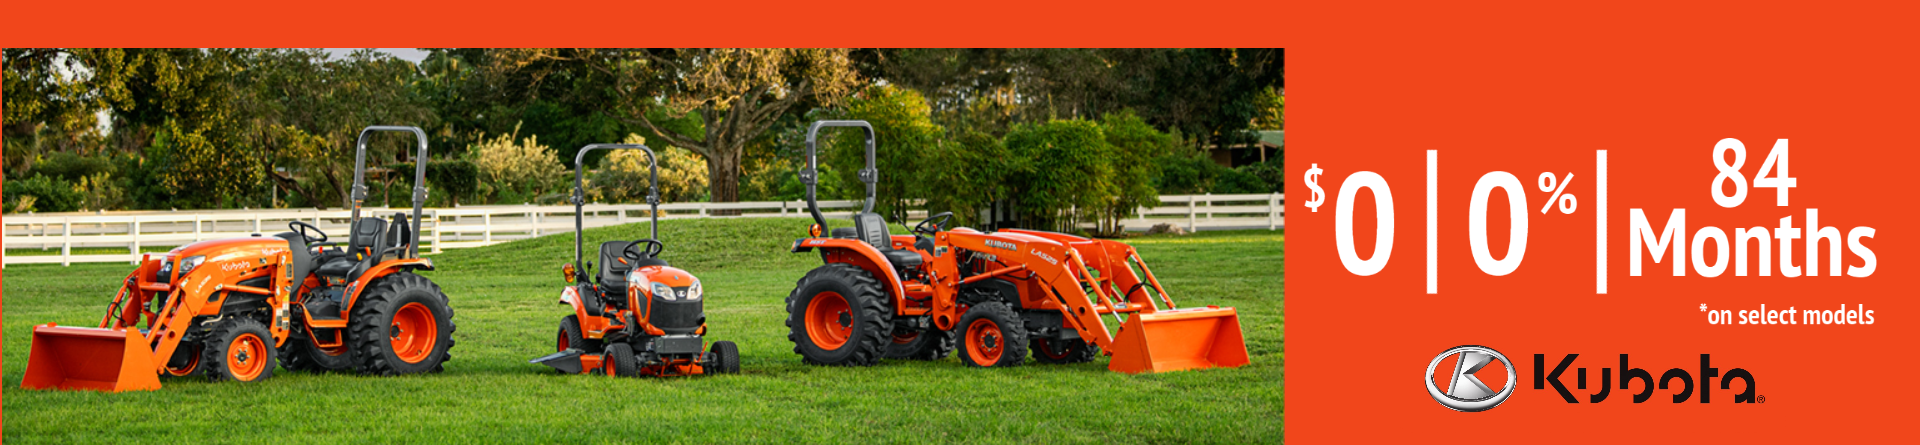 Kubota Equipment.